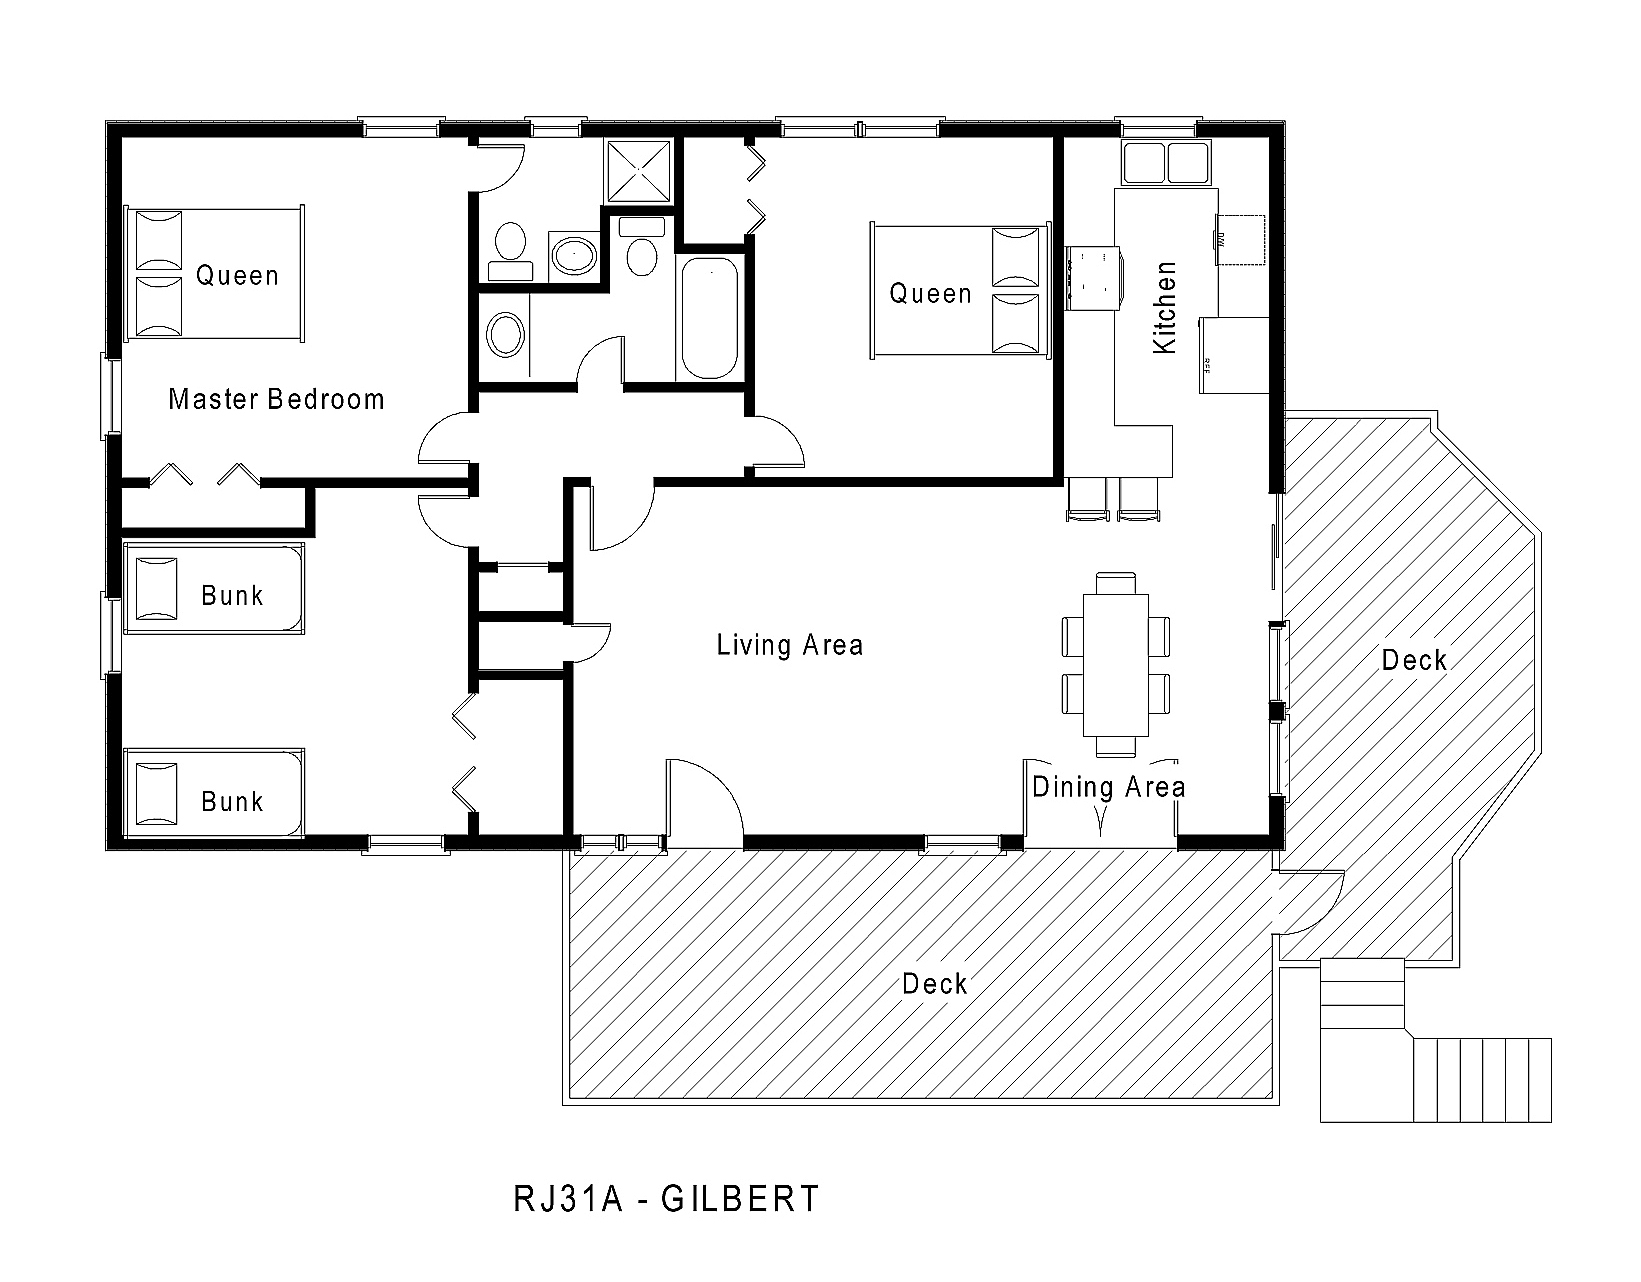 Rj31a gilbert floorplan level midgett realty for One level house plans